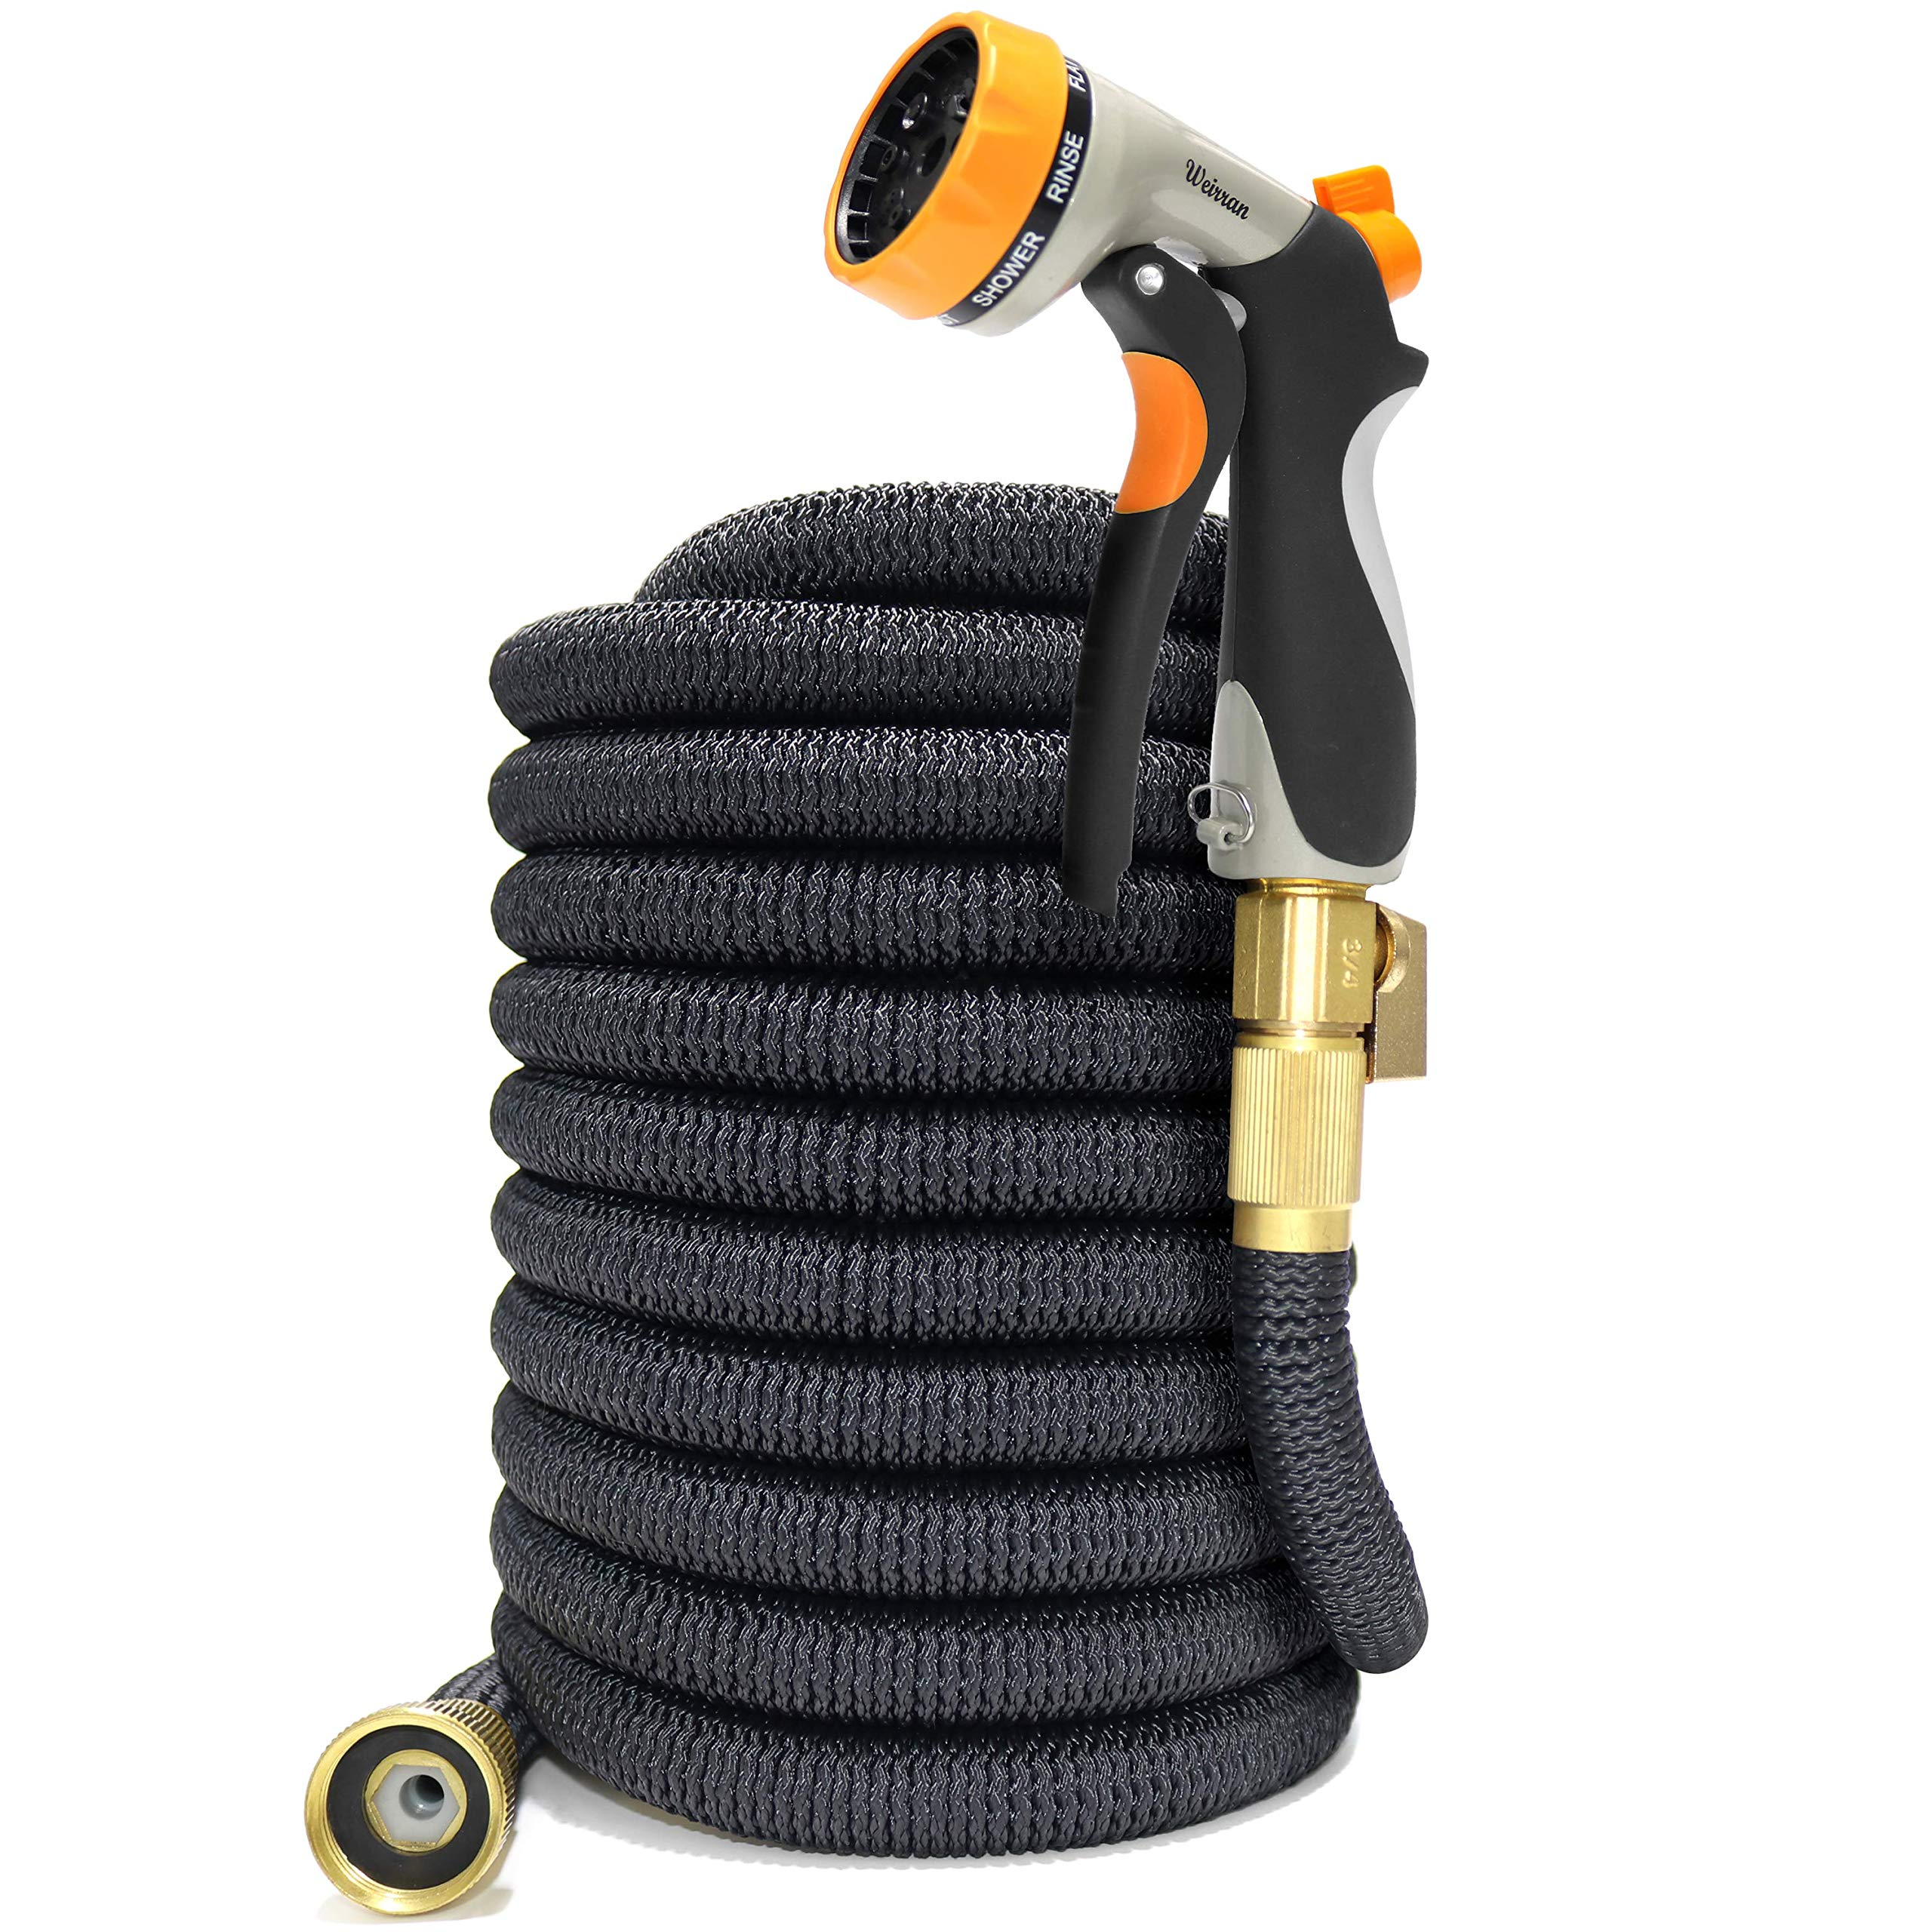 50ft Expandable Garden Hose with 8 Pattern Hose Nozzle - 3/4'' Solid Brass Fittings with Protective Washer No Leak & Rust - Portable Storage Bag Easy Carry and Use Muti-Function Sprayer